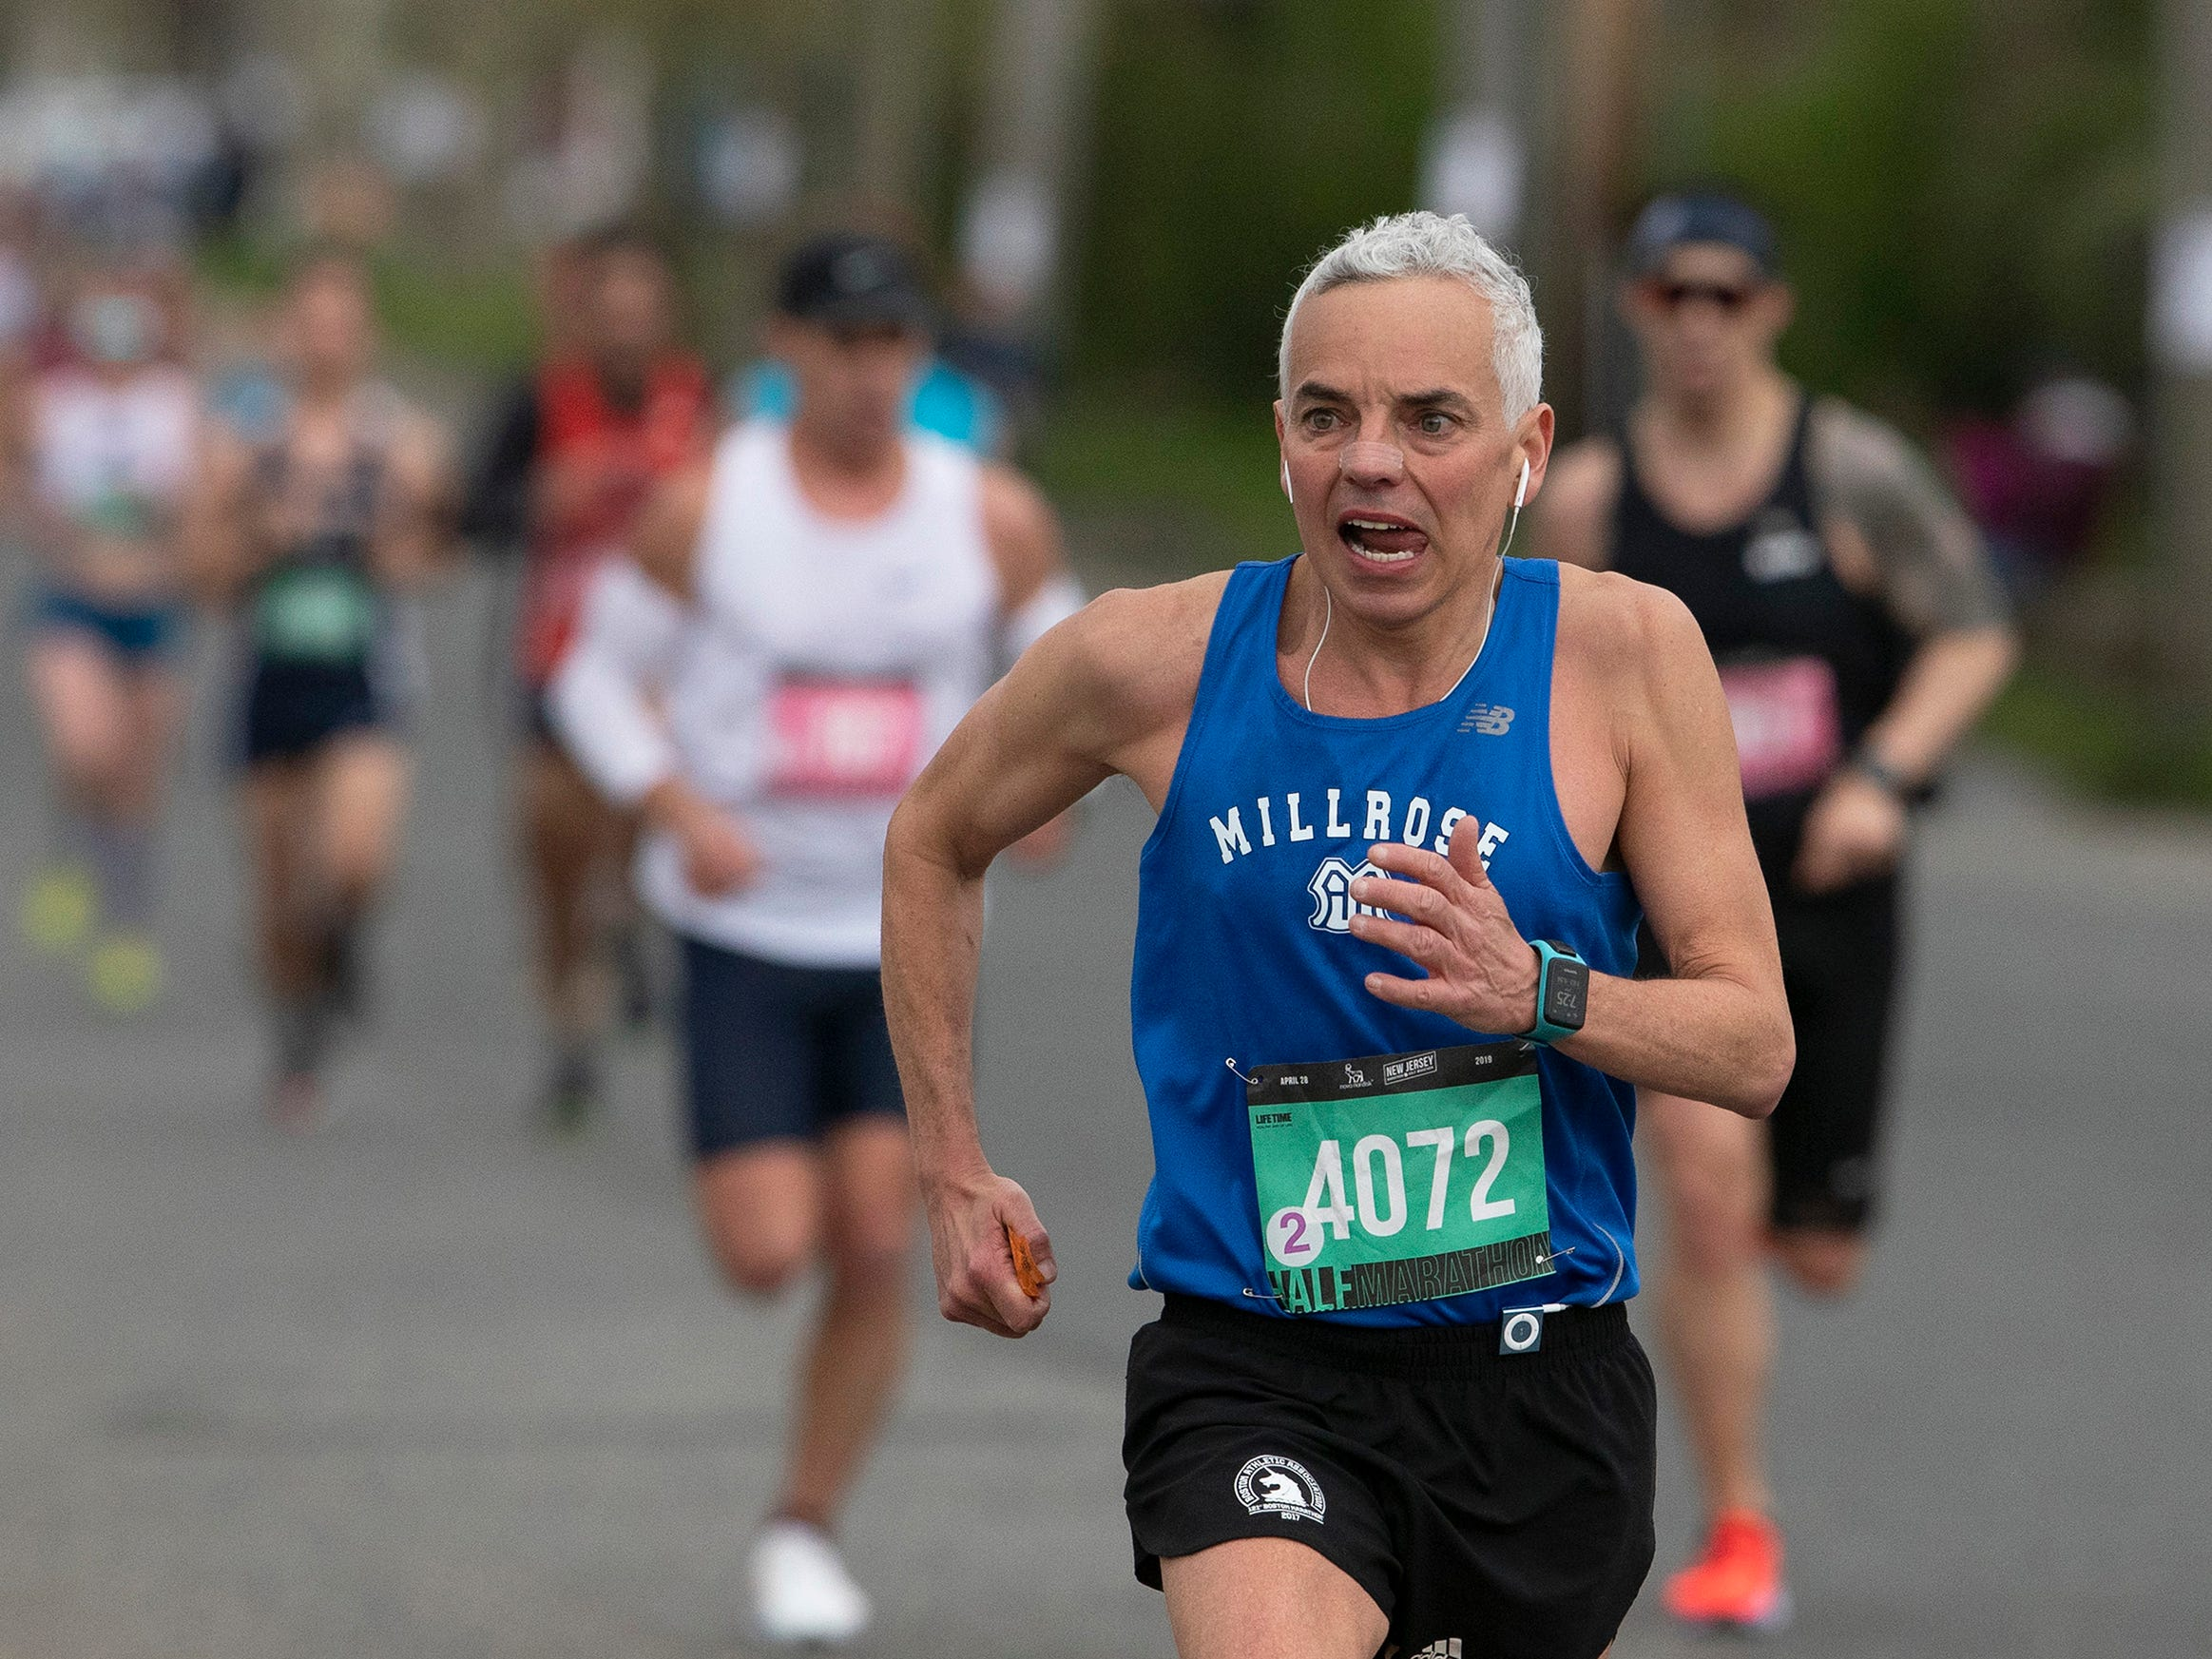 Liam Malanaphy competes in the half marathon. 2019 Novo Nordisk New Jersey Marathon and Half Marathon which started at Monmouth Park in Oceanport and ended at Ocean Promenade in Long Branch.